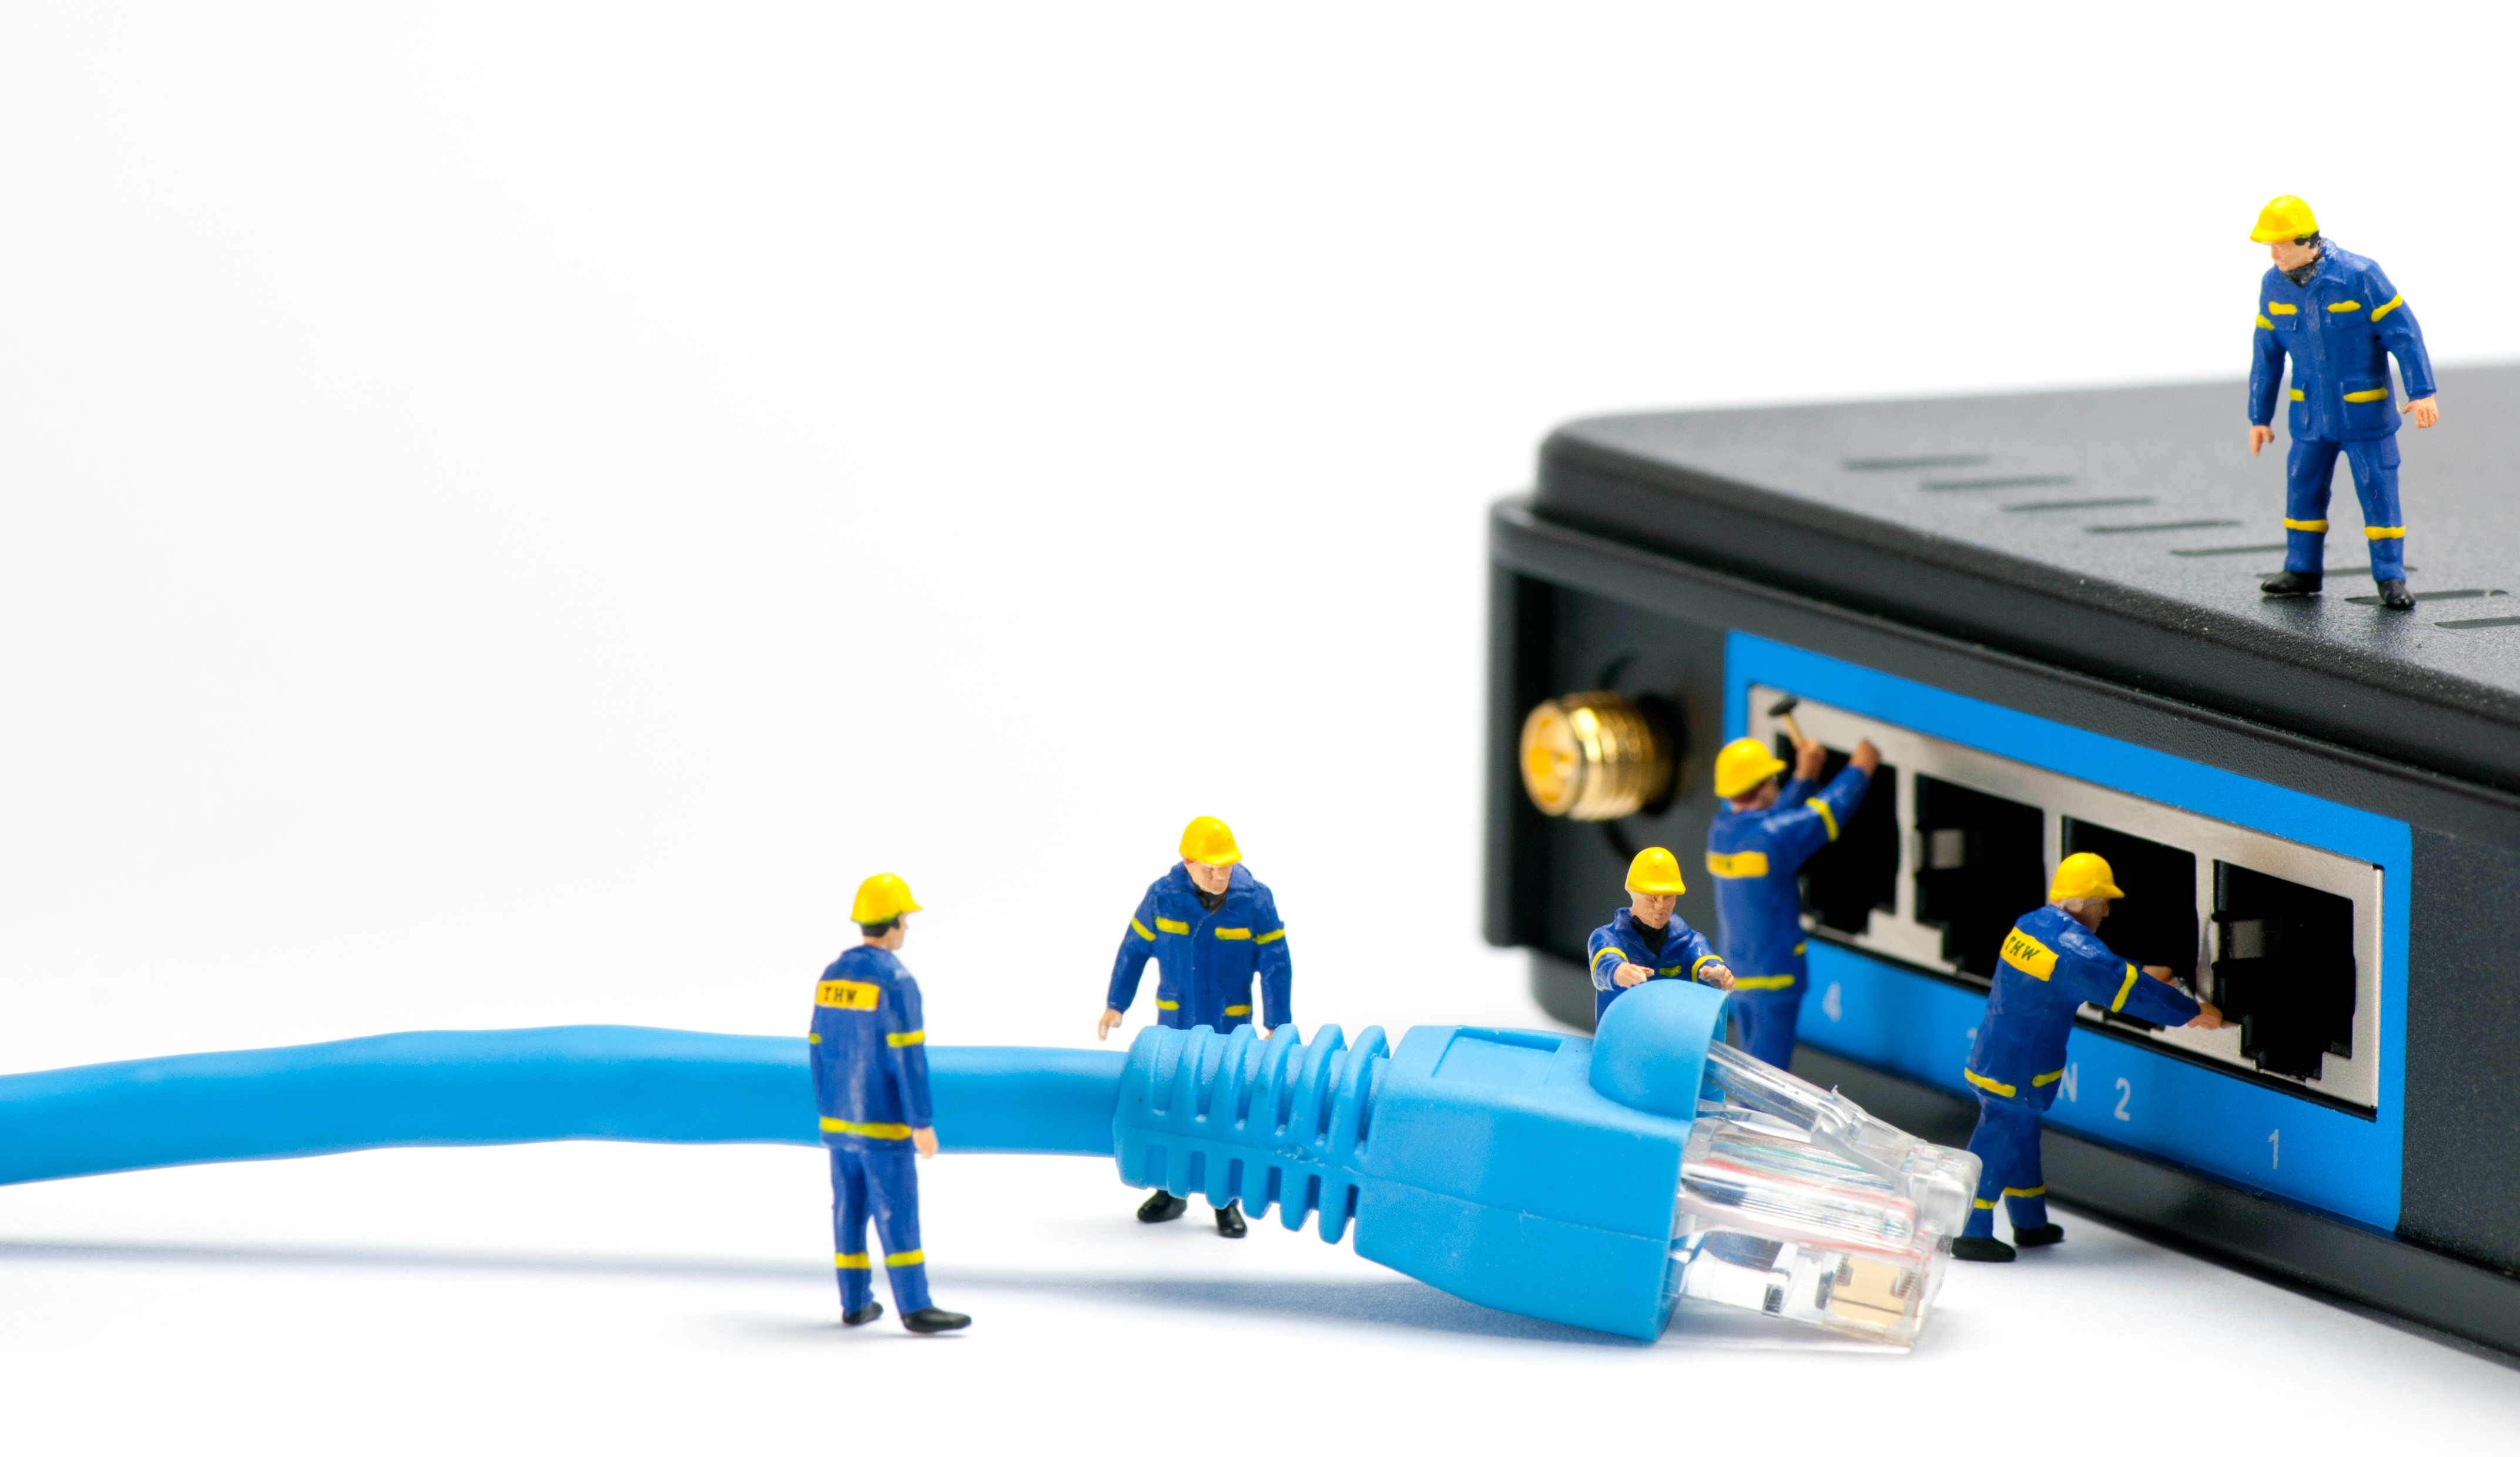 Will provide your office or home with professional network support